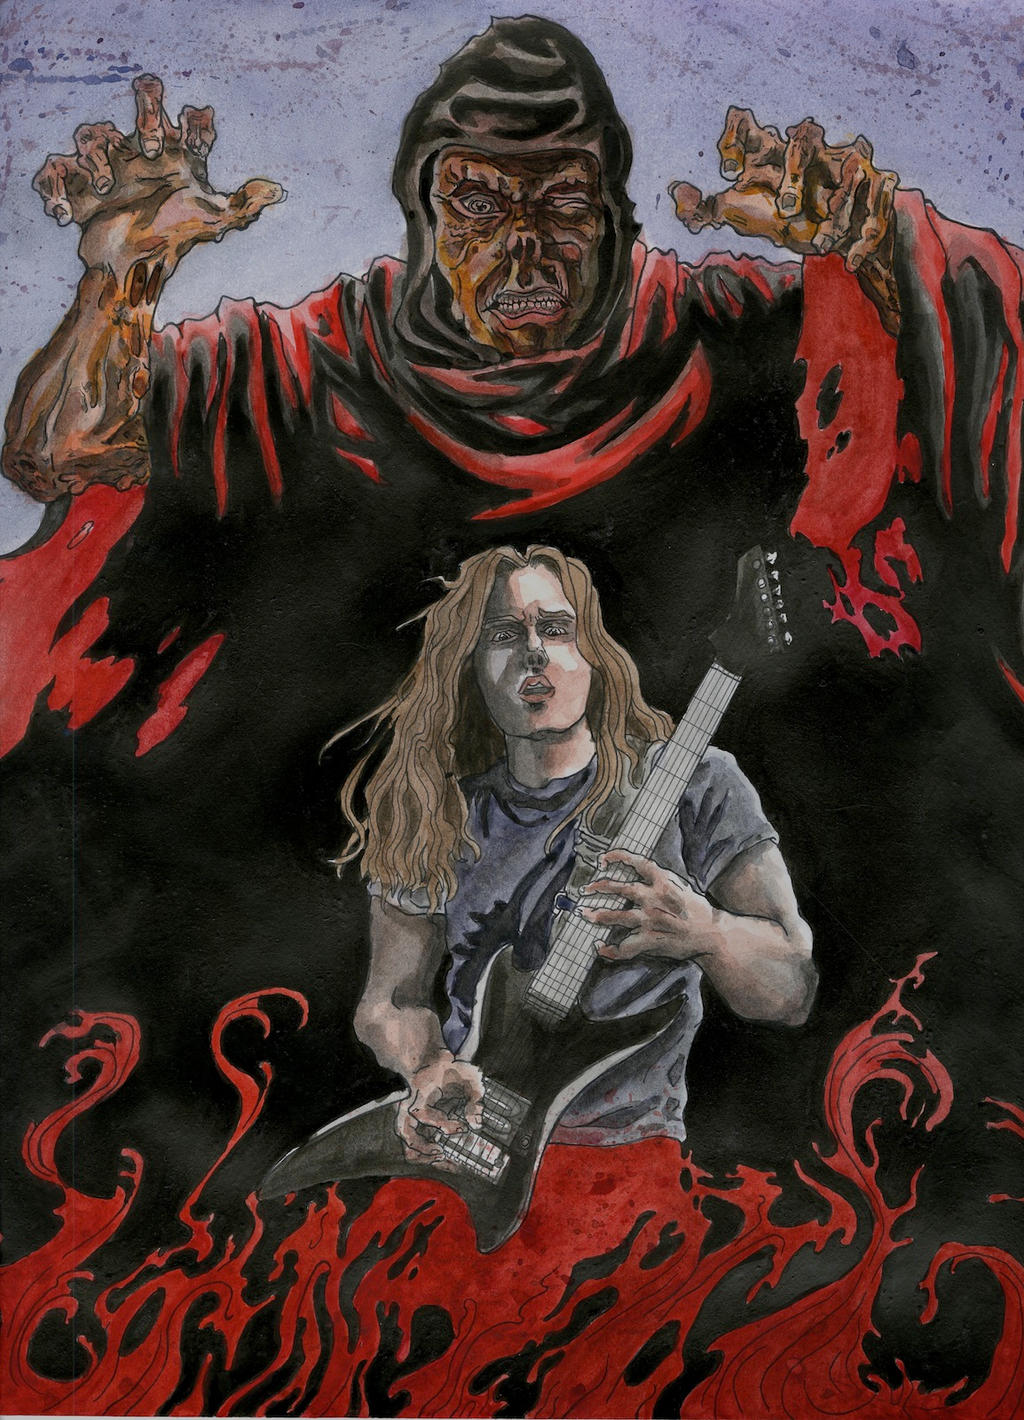 Chuck Schuldiner by Bonesaw999 on DeviantArt